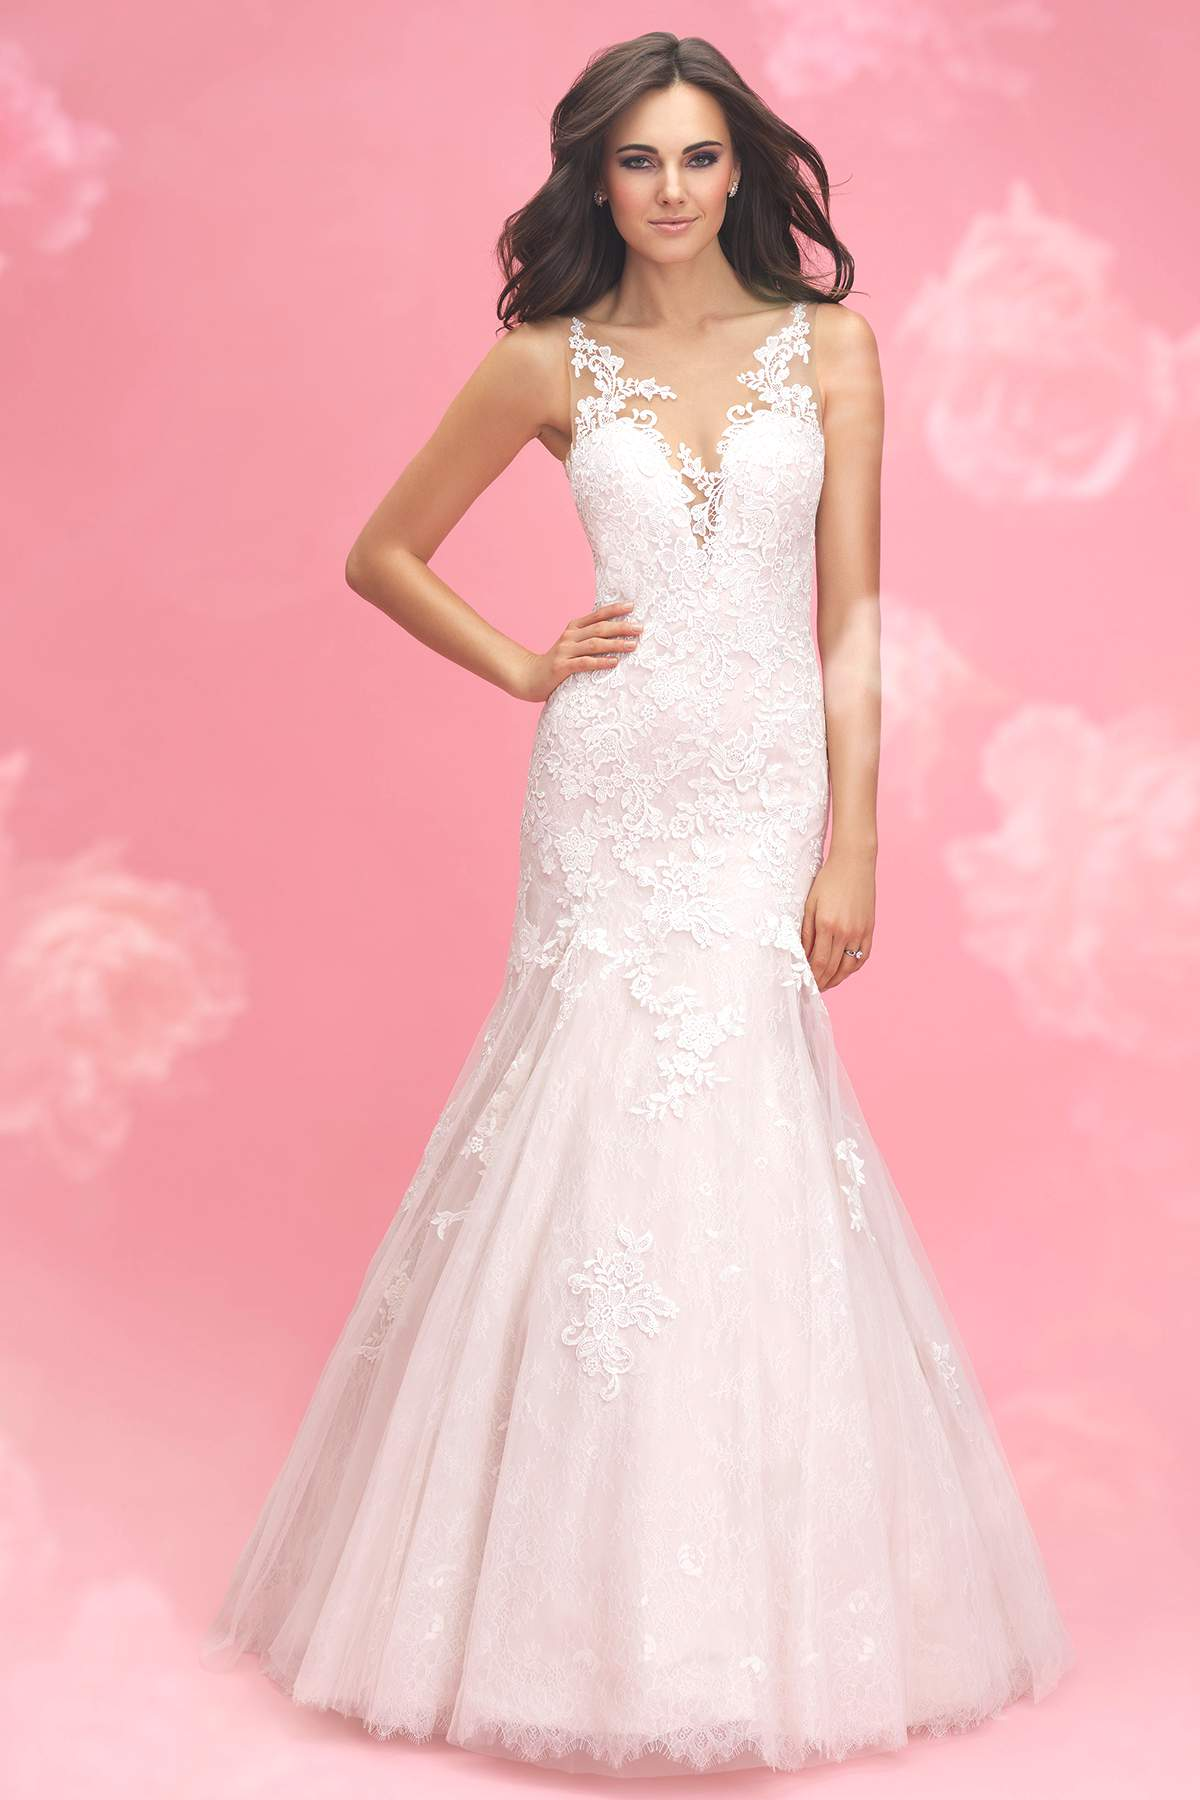 Style 3066 by Allure Romance - Find Your Dream Dress